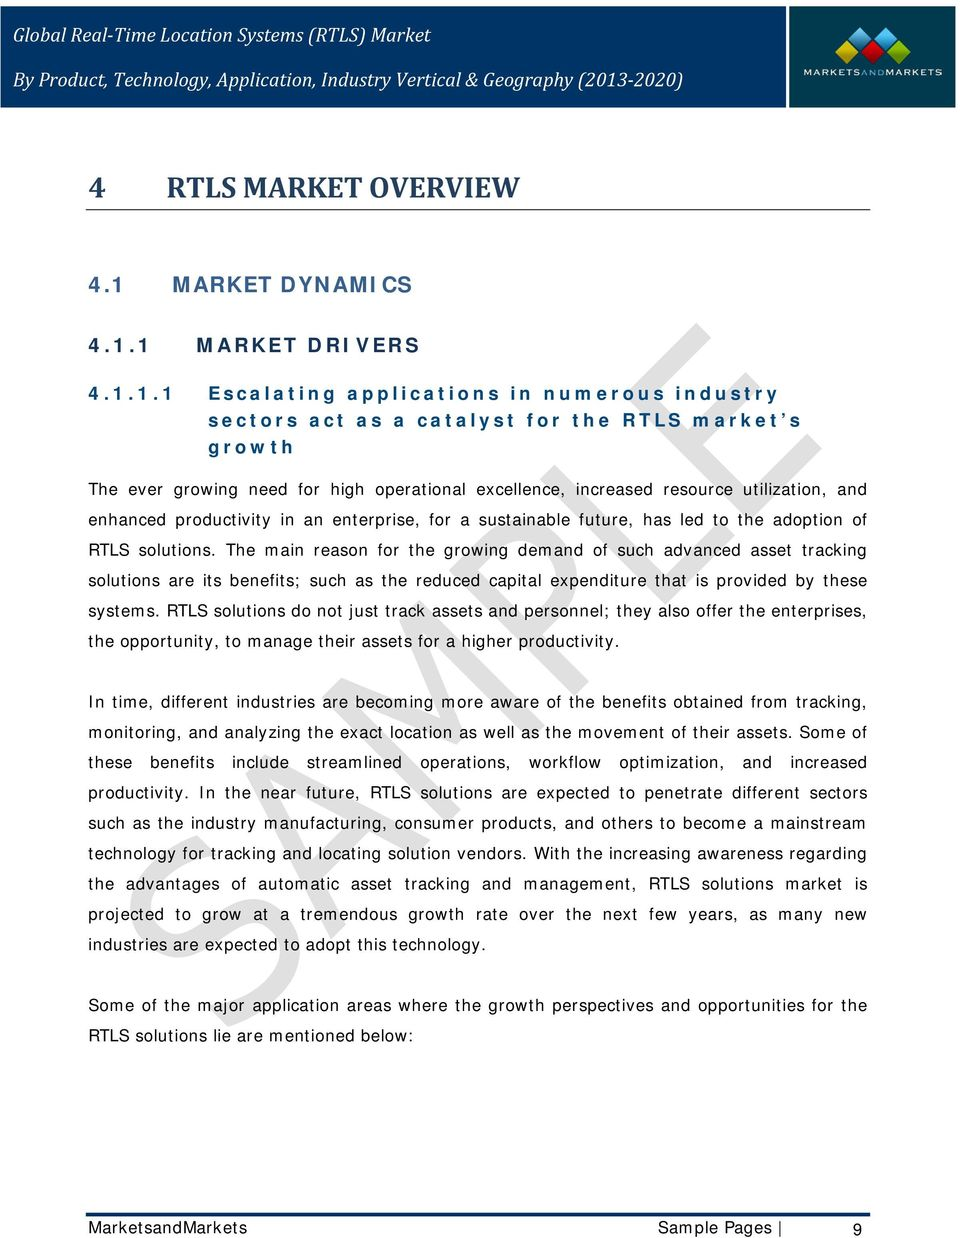 1 MARKET DRIVERS 4.1.1.1 Escalating applications in numerous industry sectors act as a catalyst for the RTLS market s growth The ever growing need for high operational excellence, increased resource